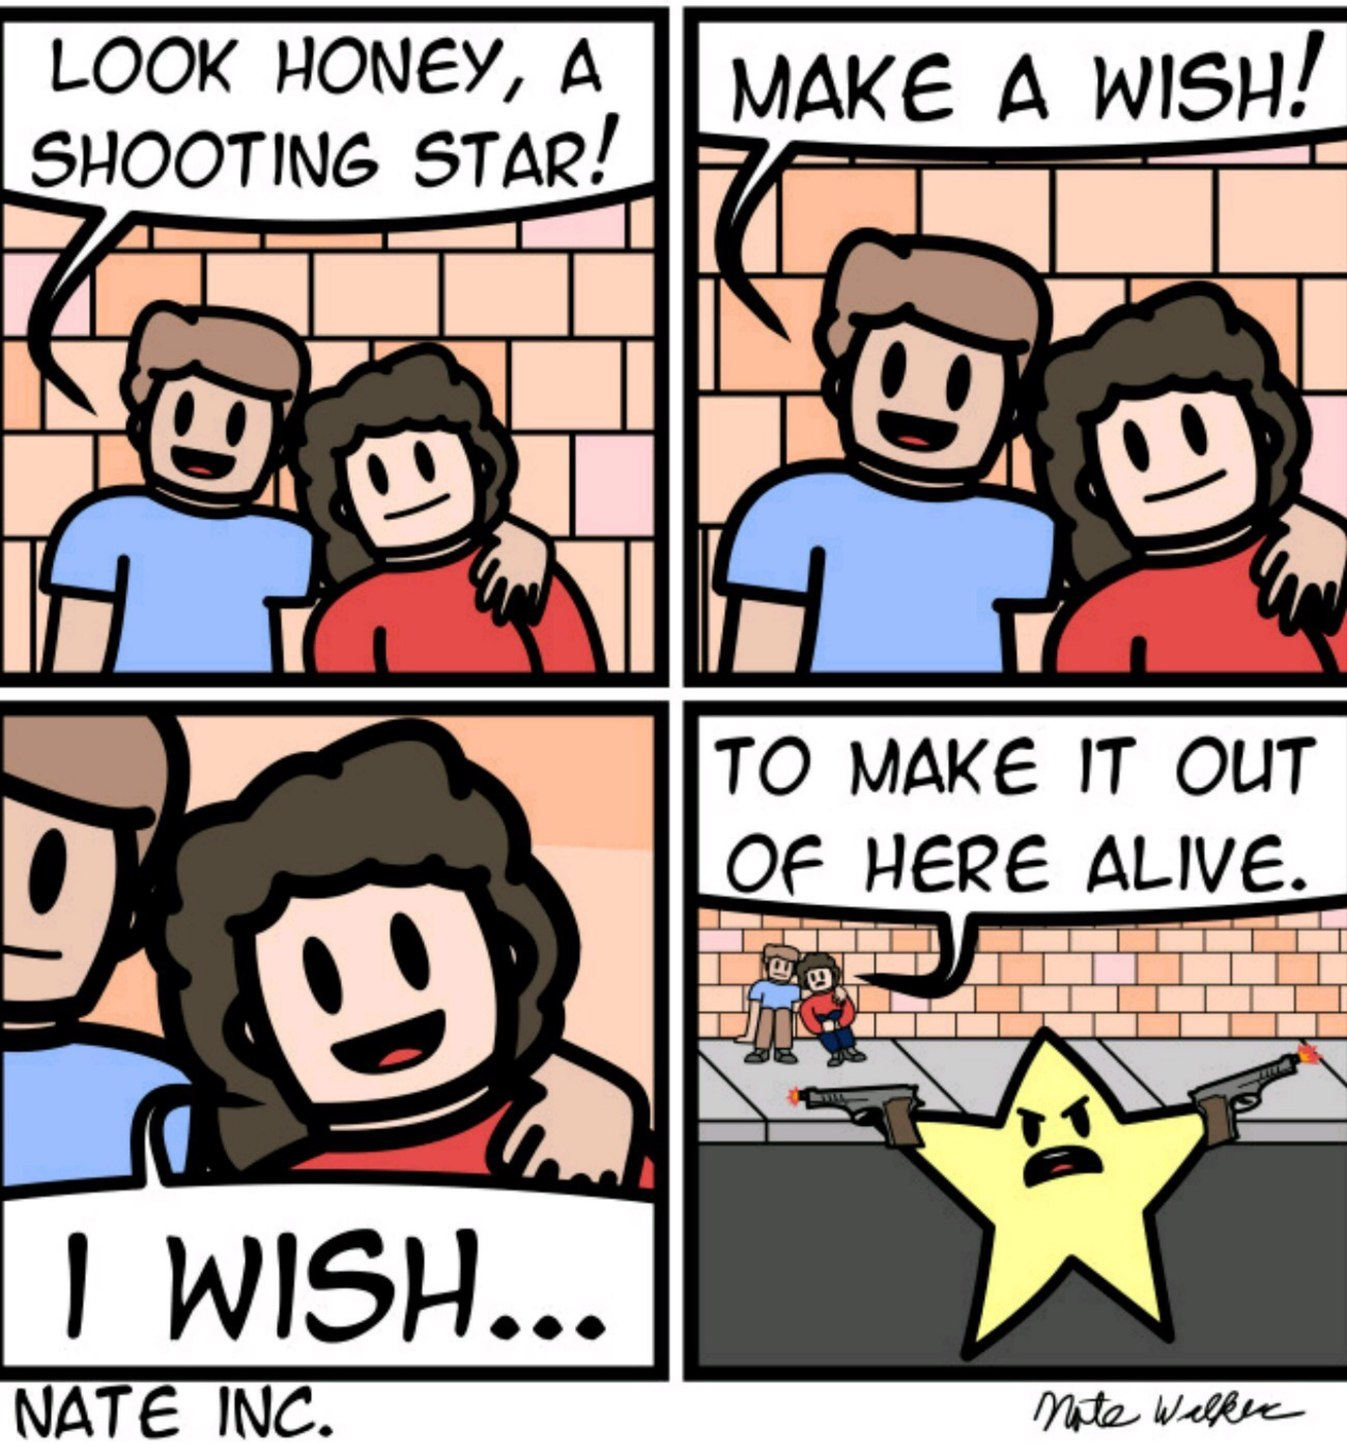 Time for a wish - meme